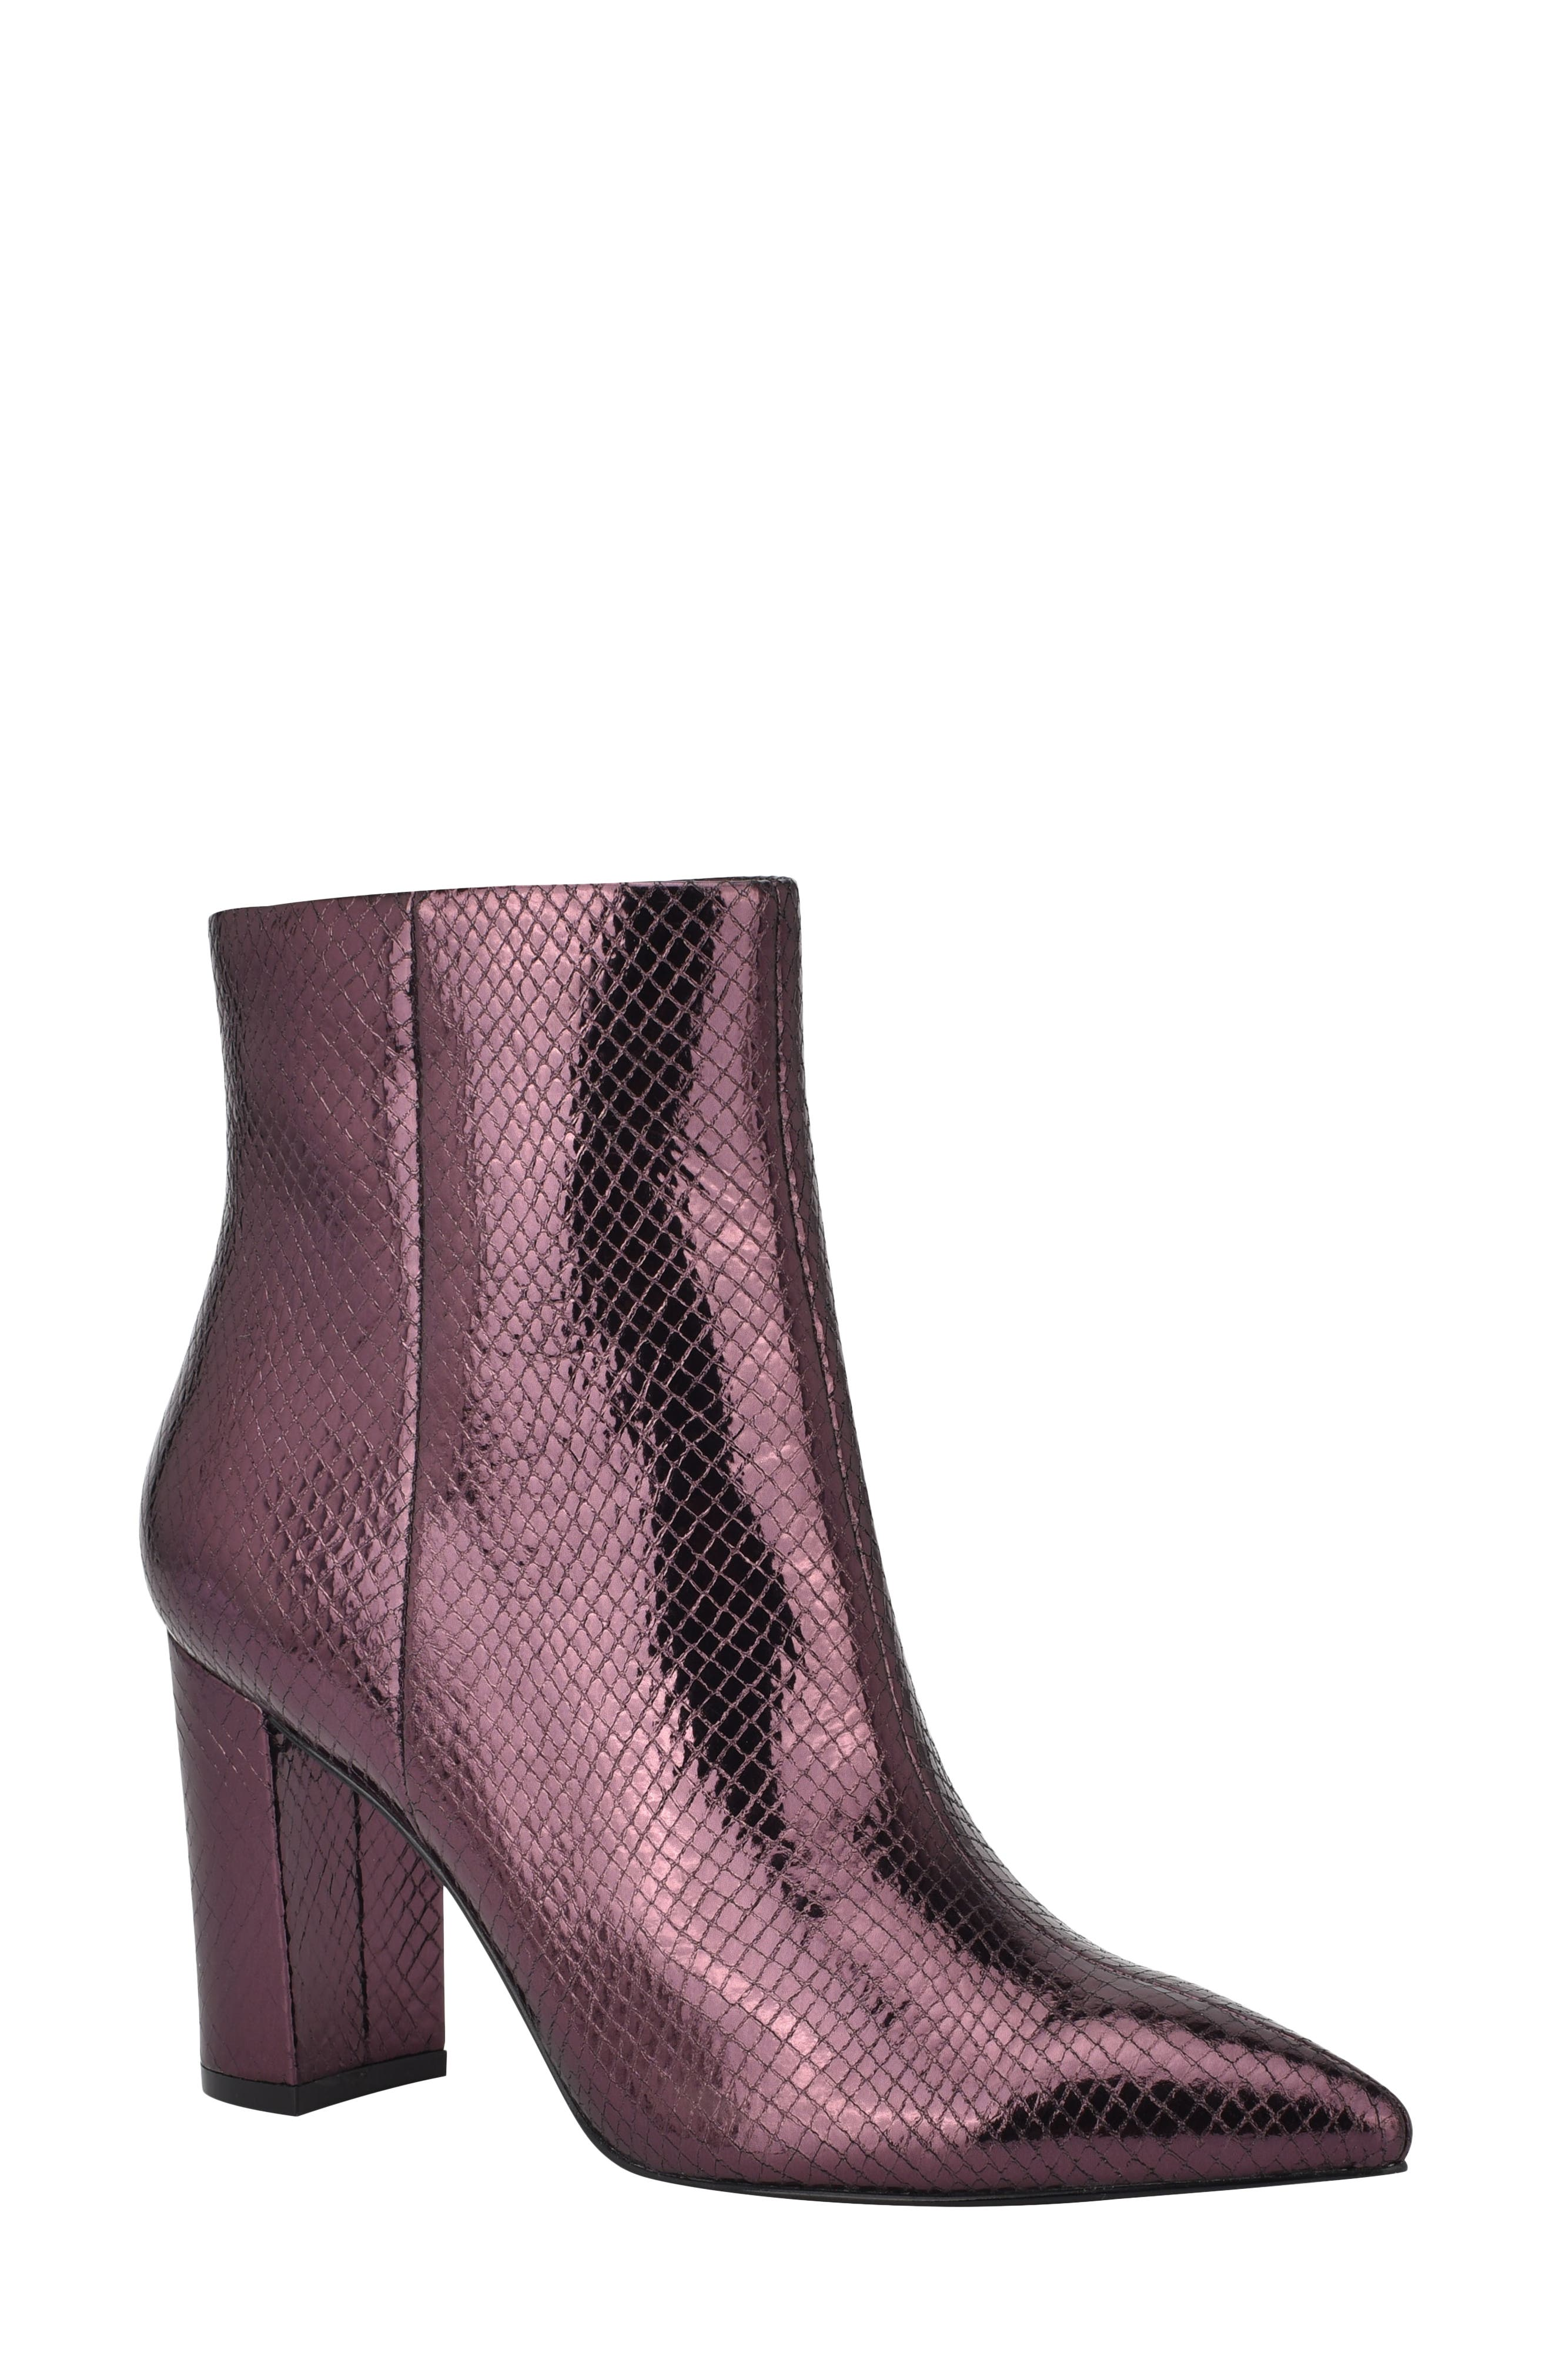 A curved, half-moon heel elevates a sleek and striking bootie crafted from supple leather in a pointy-toe silhouette. Style Name: Marc Fisher Ltd Ulani Pointy Toe Bootie (Women). Style Number: 5593529. Available in stores.